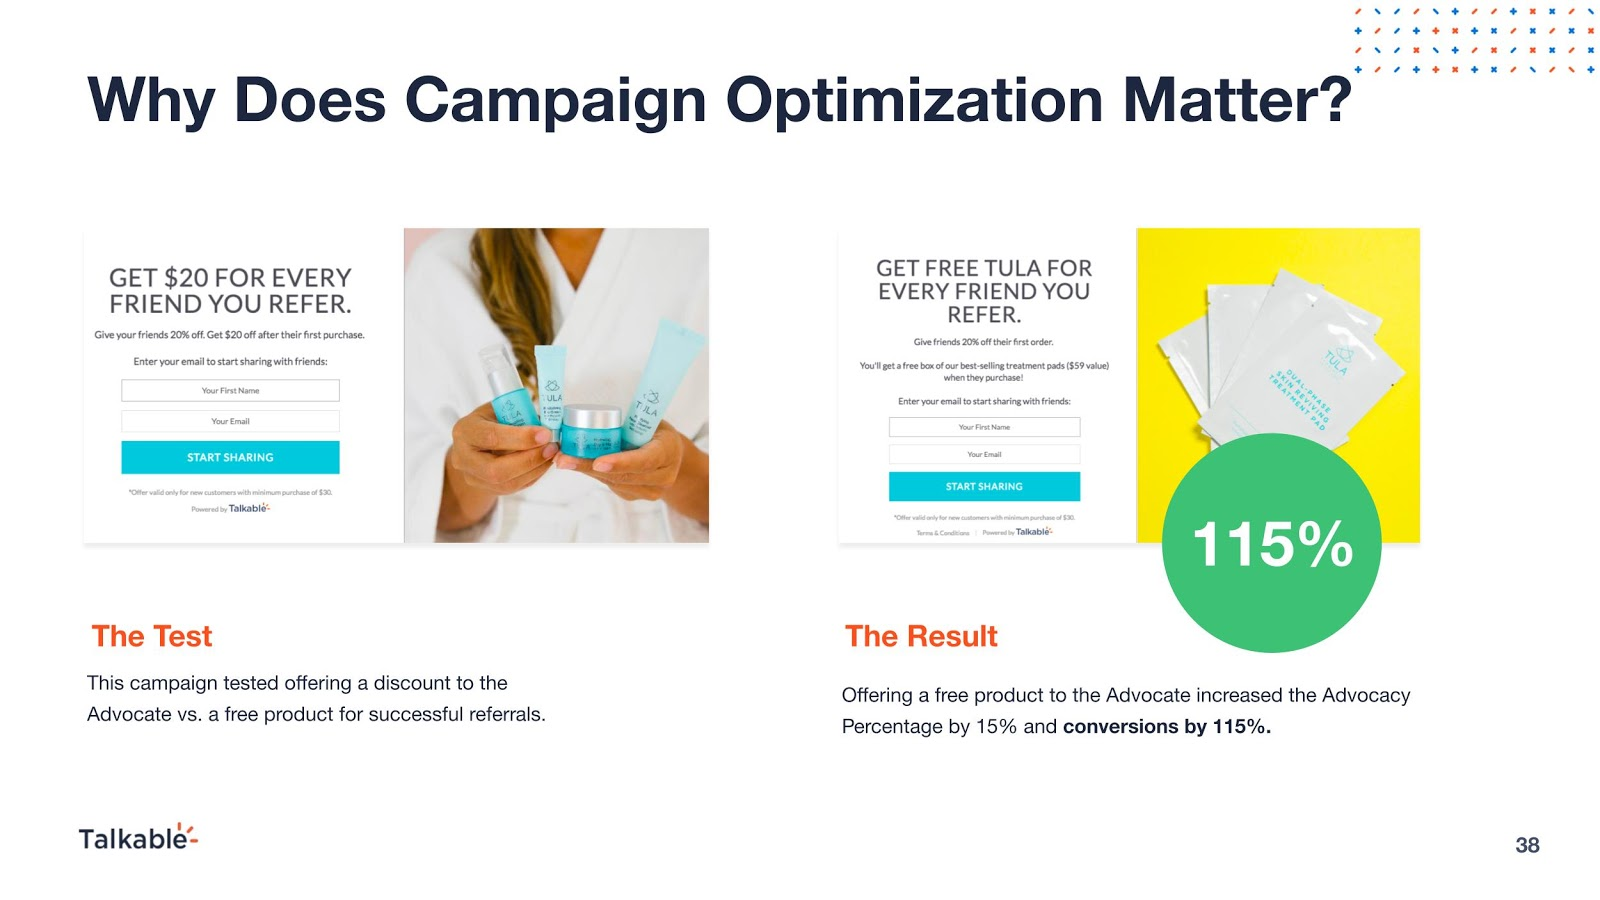 Why Campaign Optimization Matters